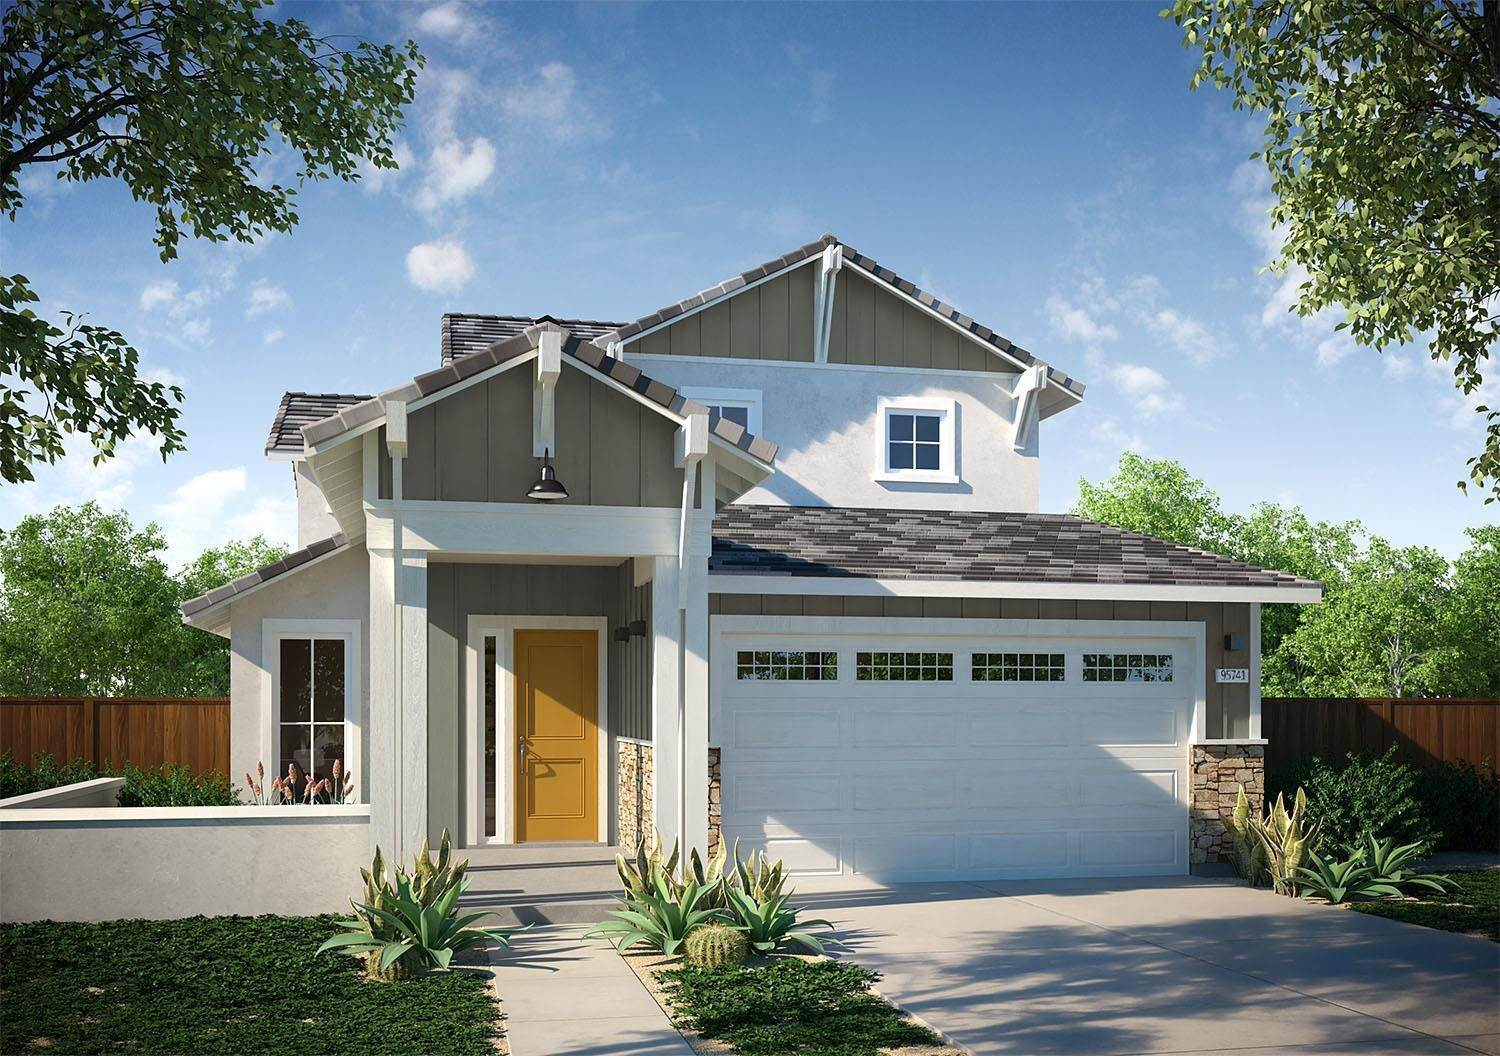 Single Family for Sale at Mills Station At Cresleigh Ranch - Residence 3 12113 Wistar Way Rancho Cordova, California 95742 United States